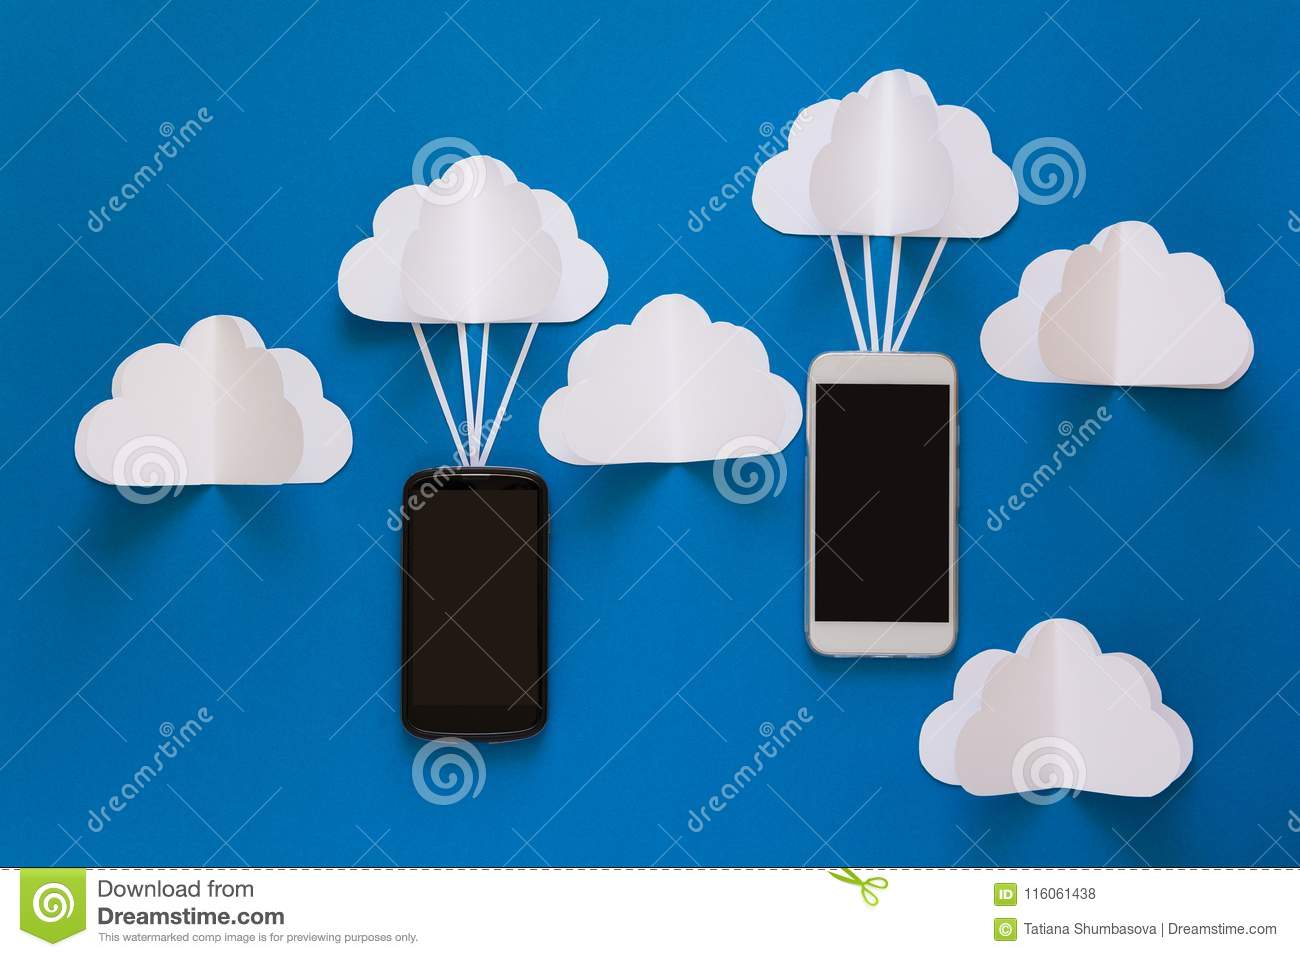 Data communications and cloud computing network concept. Smart phone flying on paper cloud.